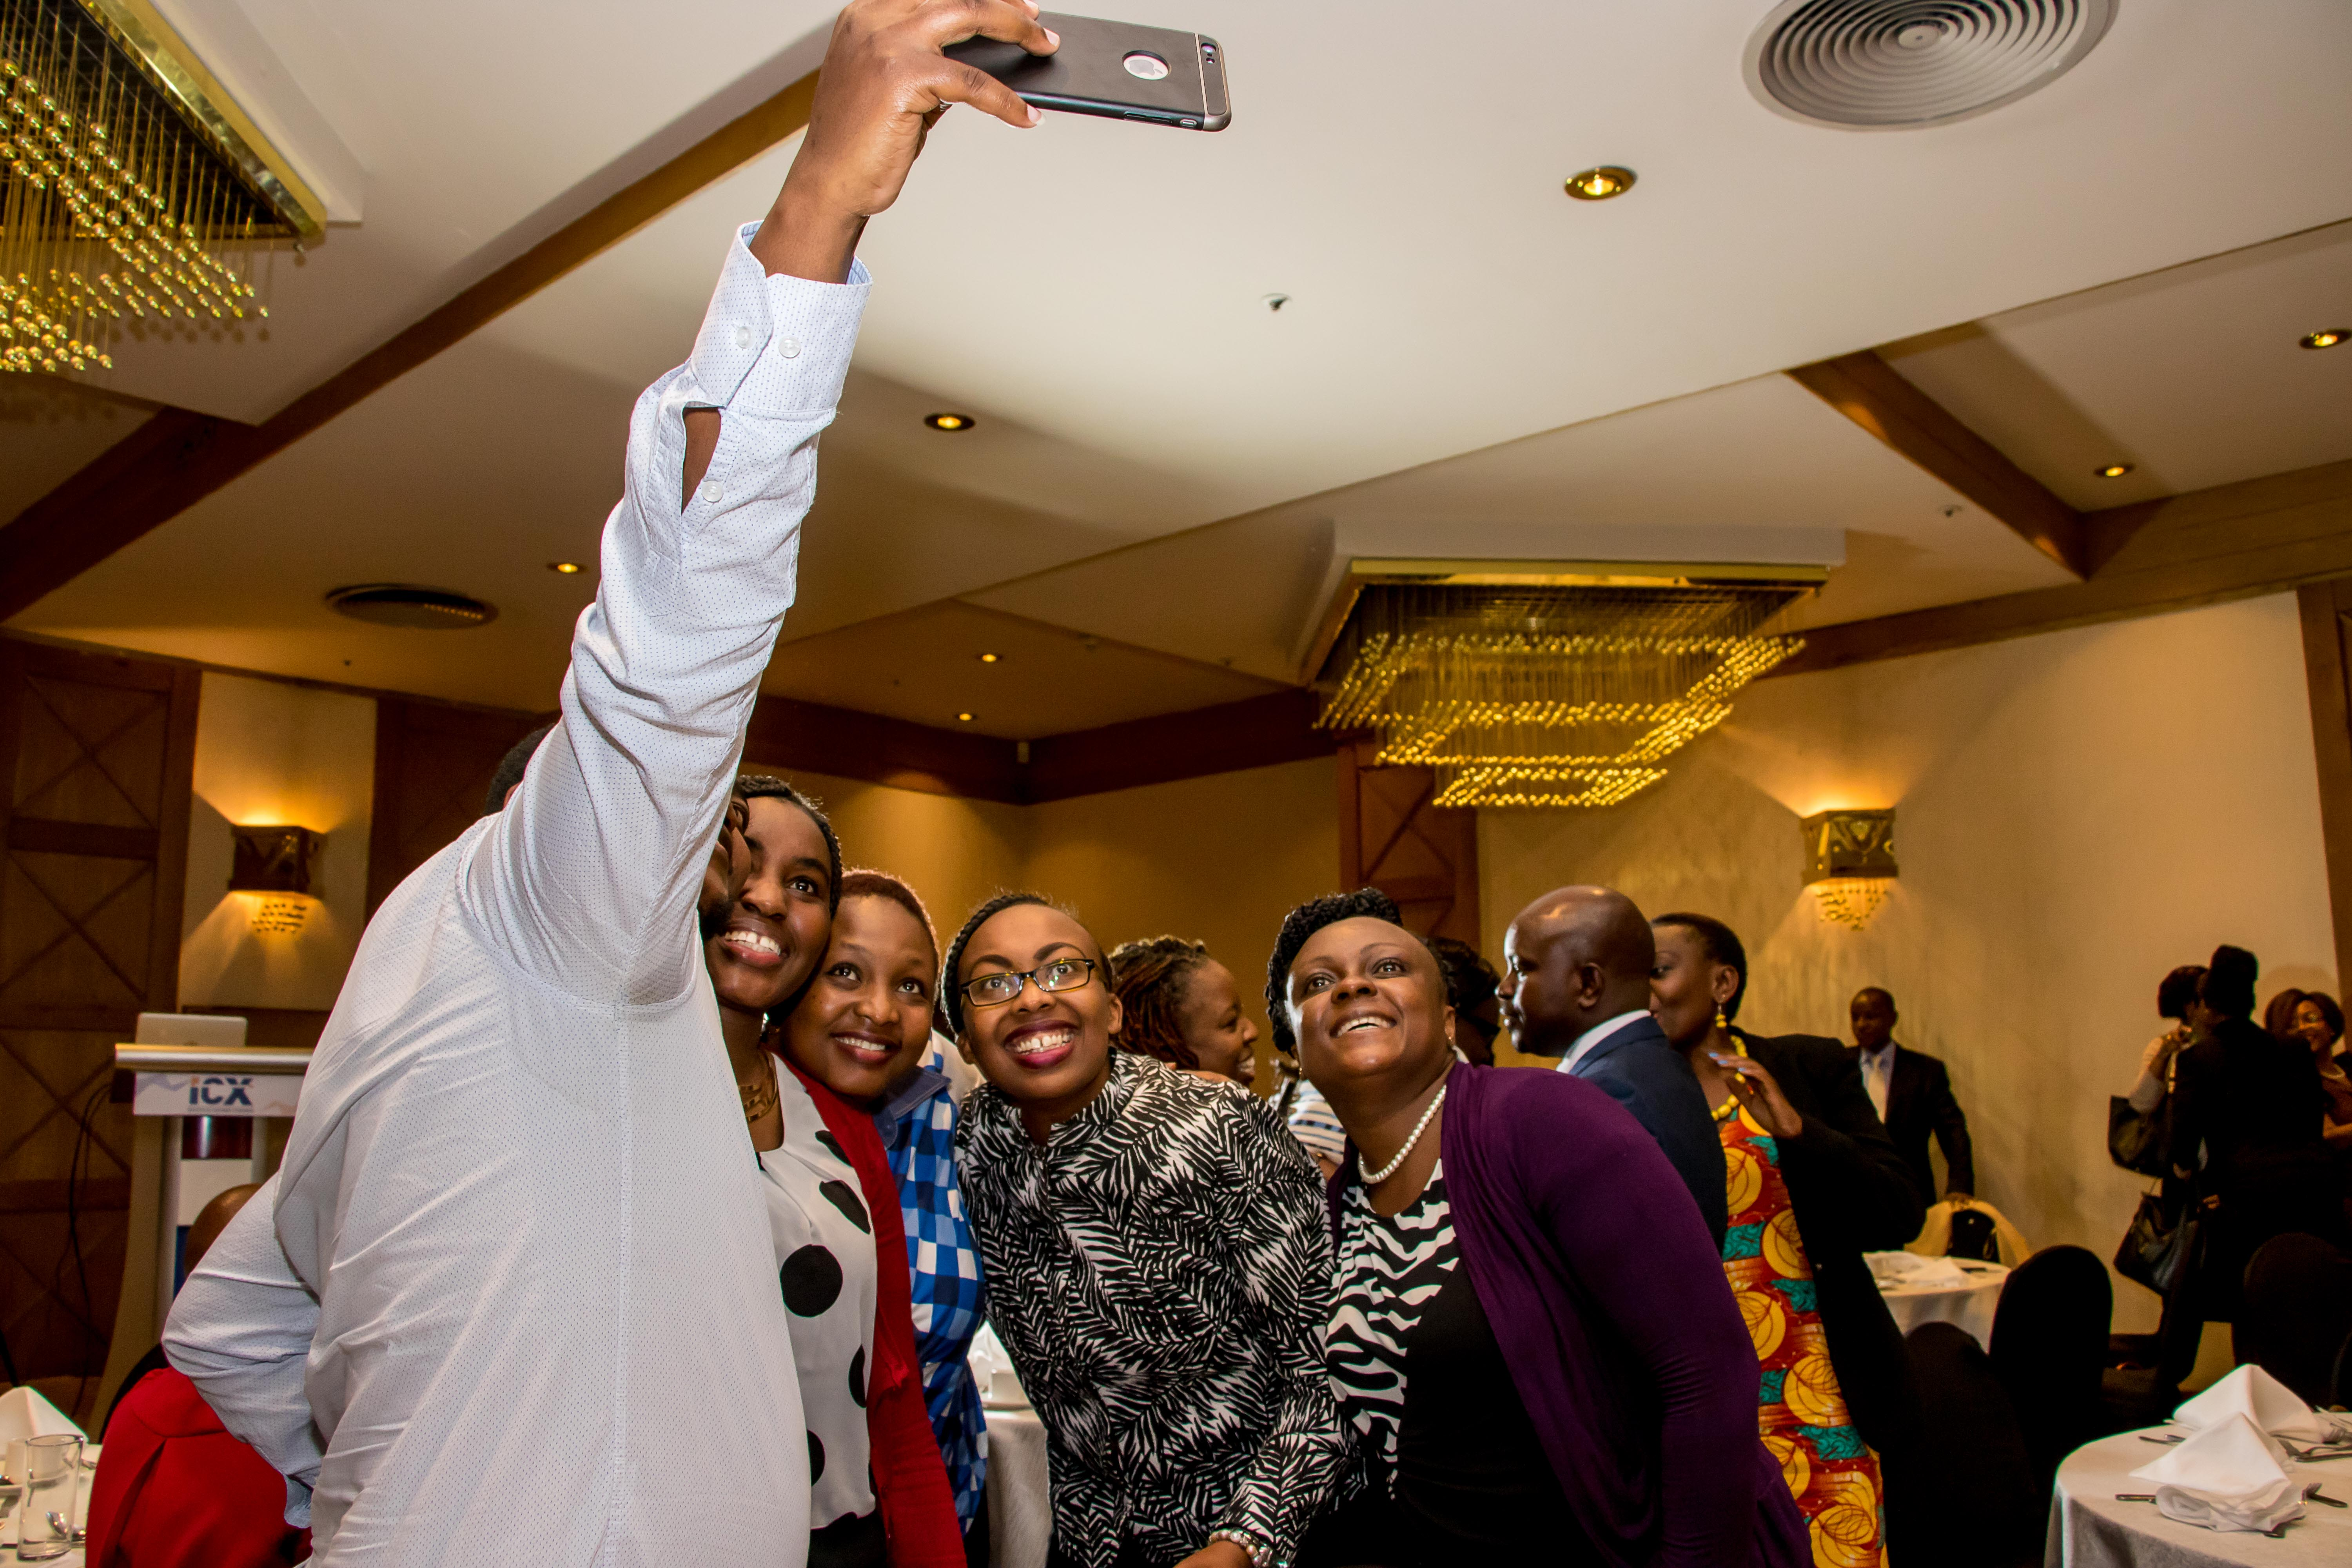 Guests enjoying selfie moment after the event